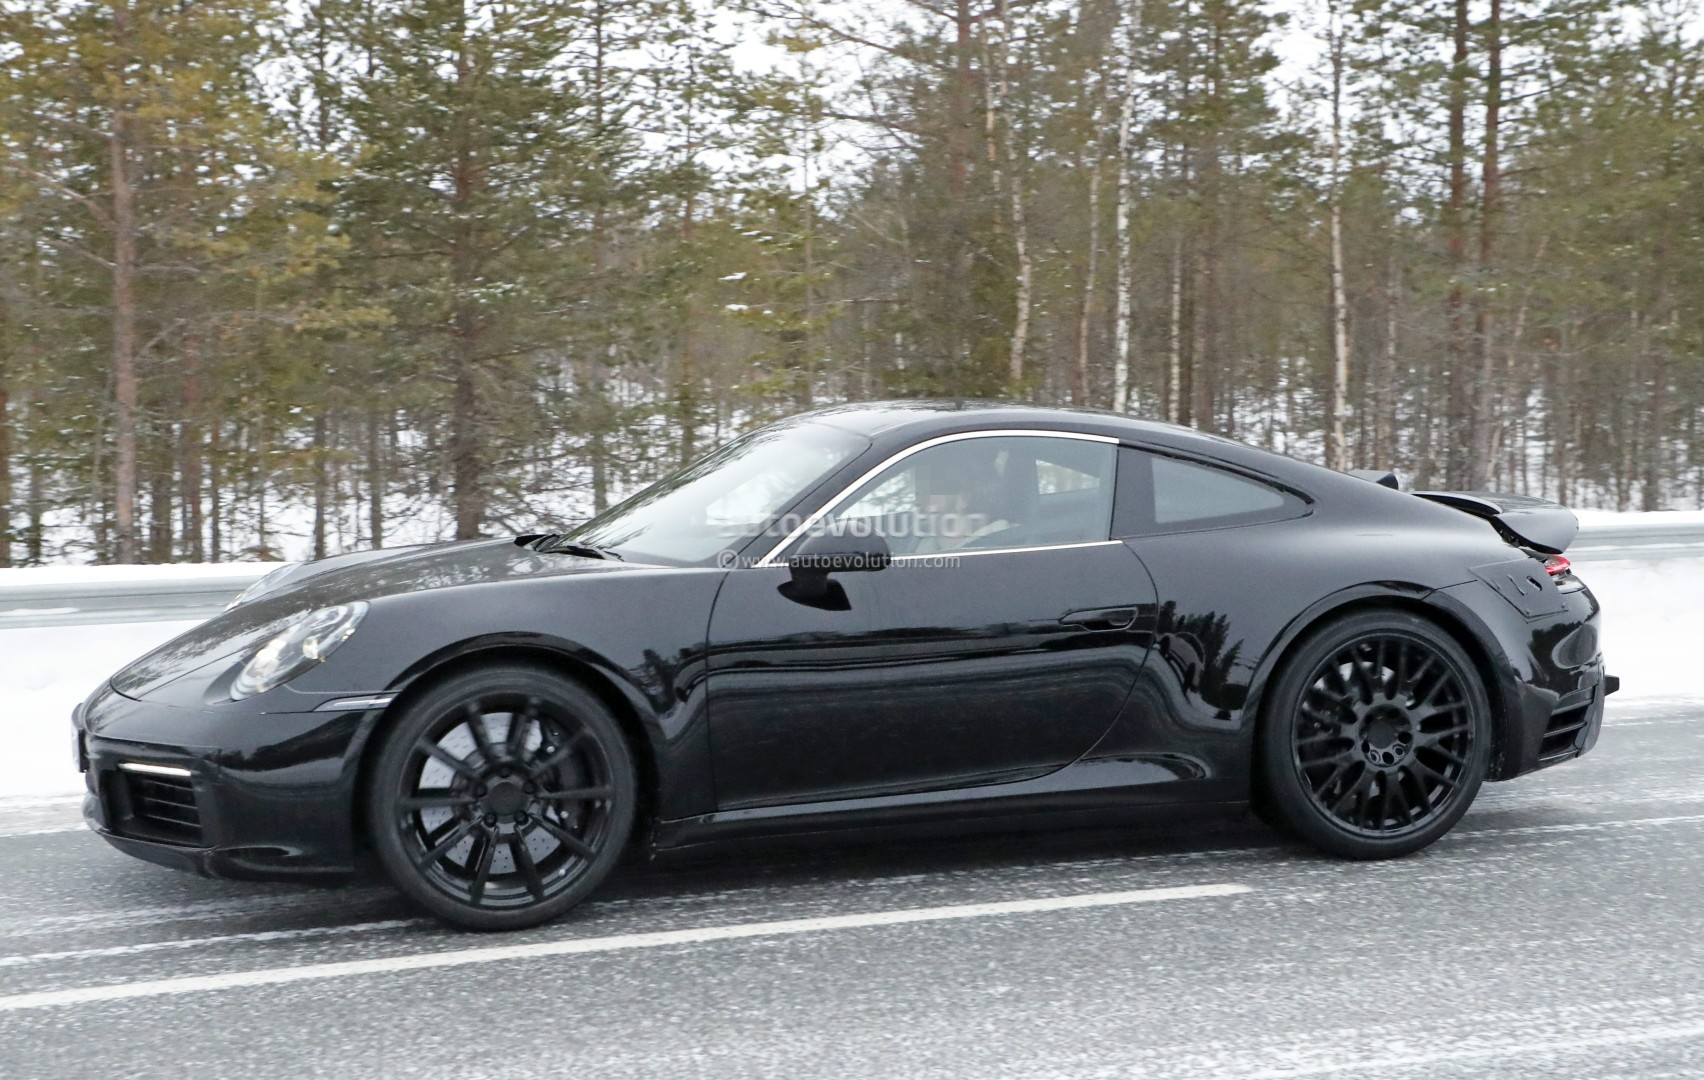 2019 Next Generation Porsche 911 992 Goes Drifting In